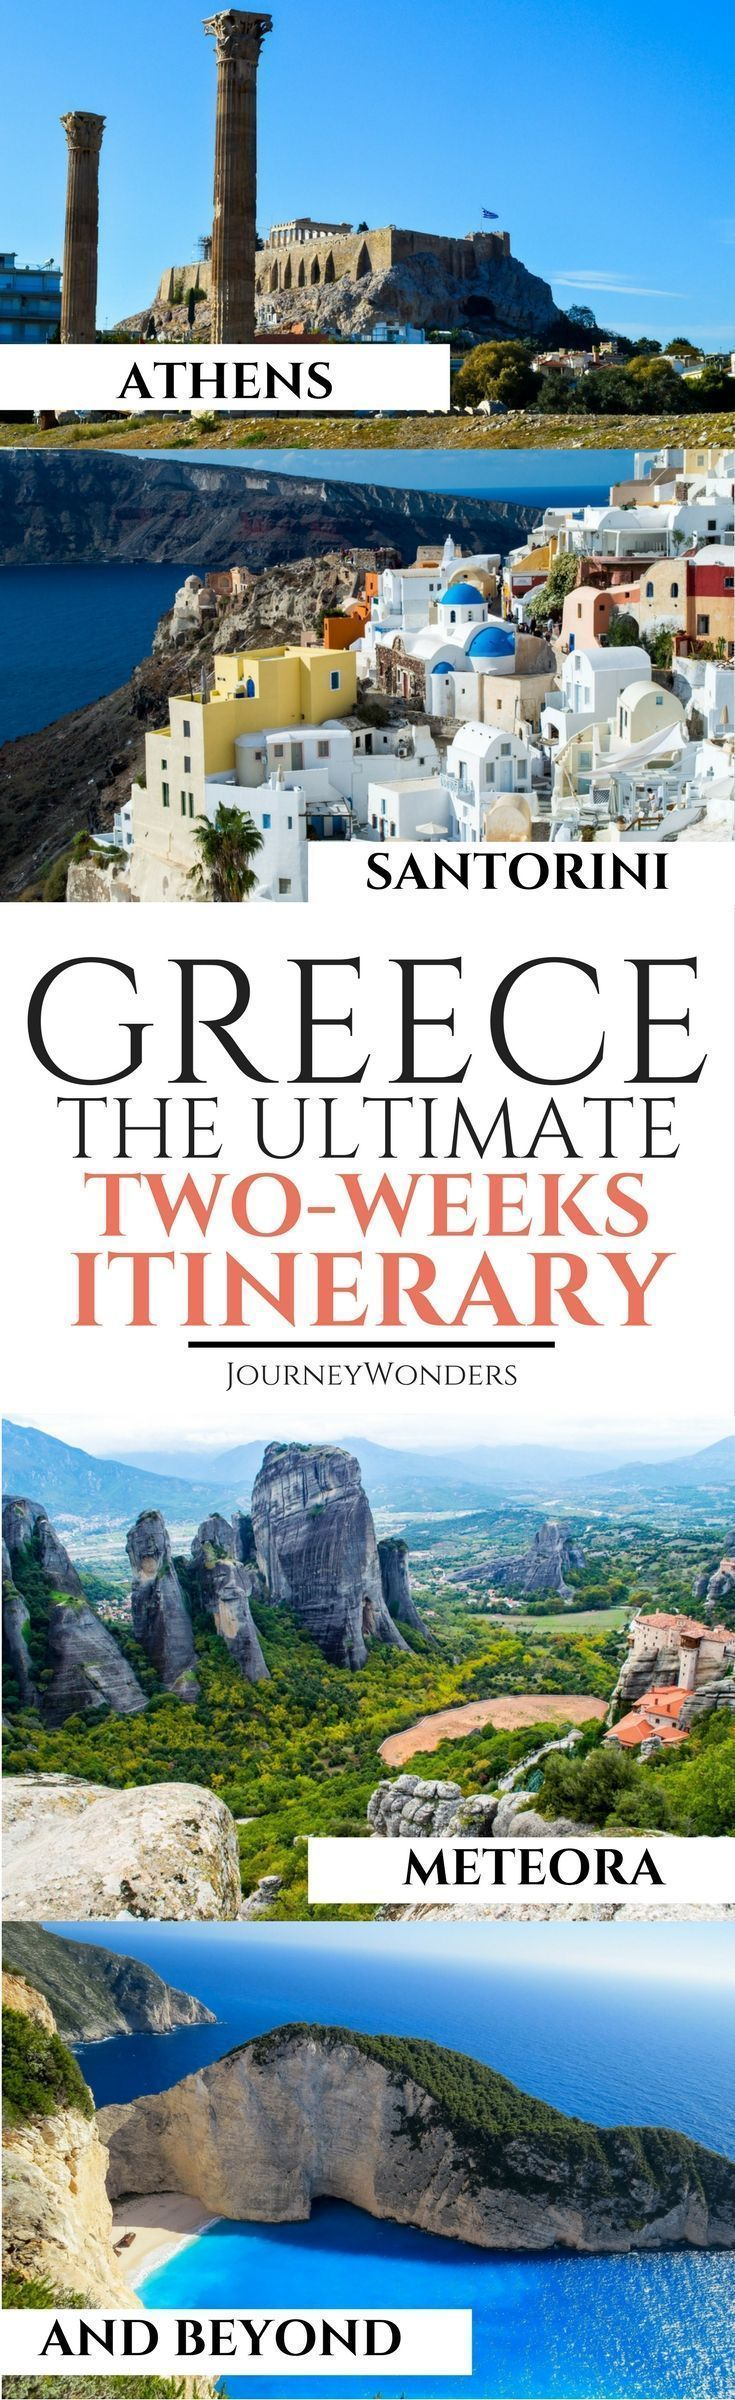 Two Weeks Greece Itinerary: Islands, Temples and Feta Cheese